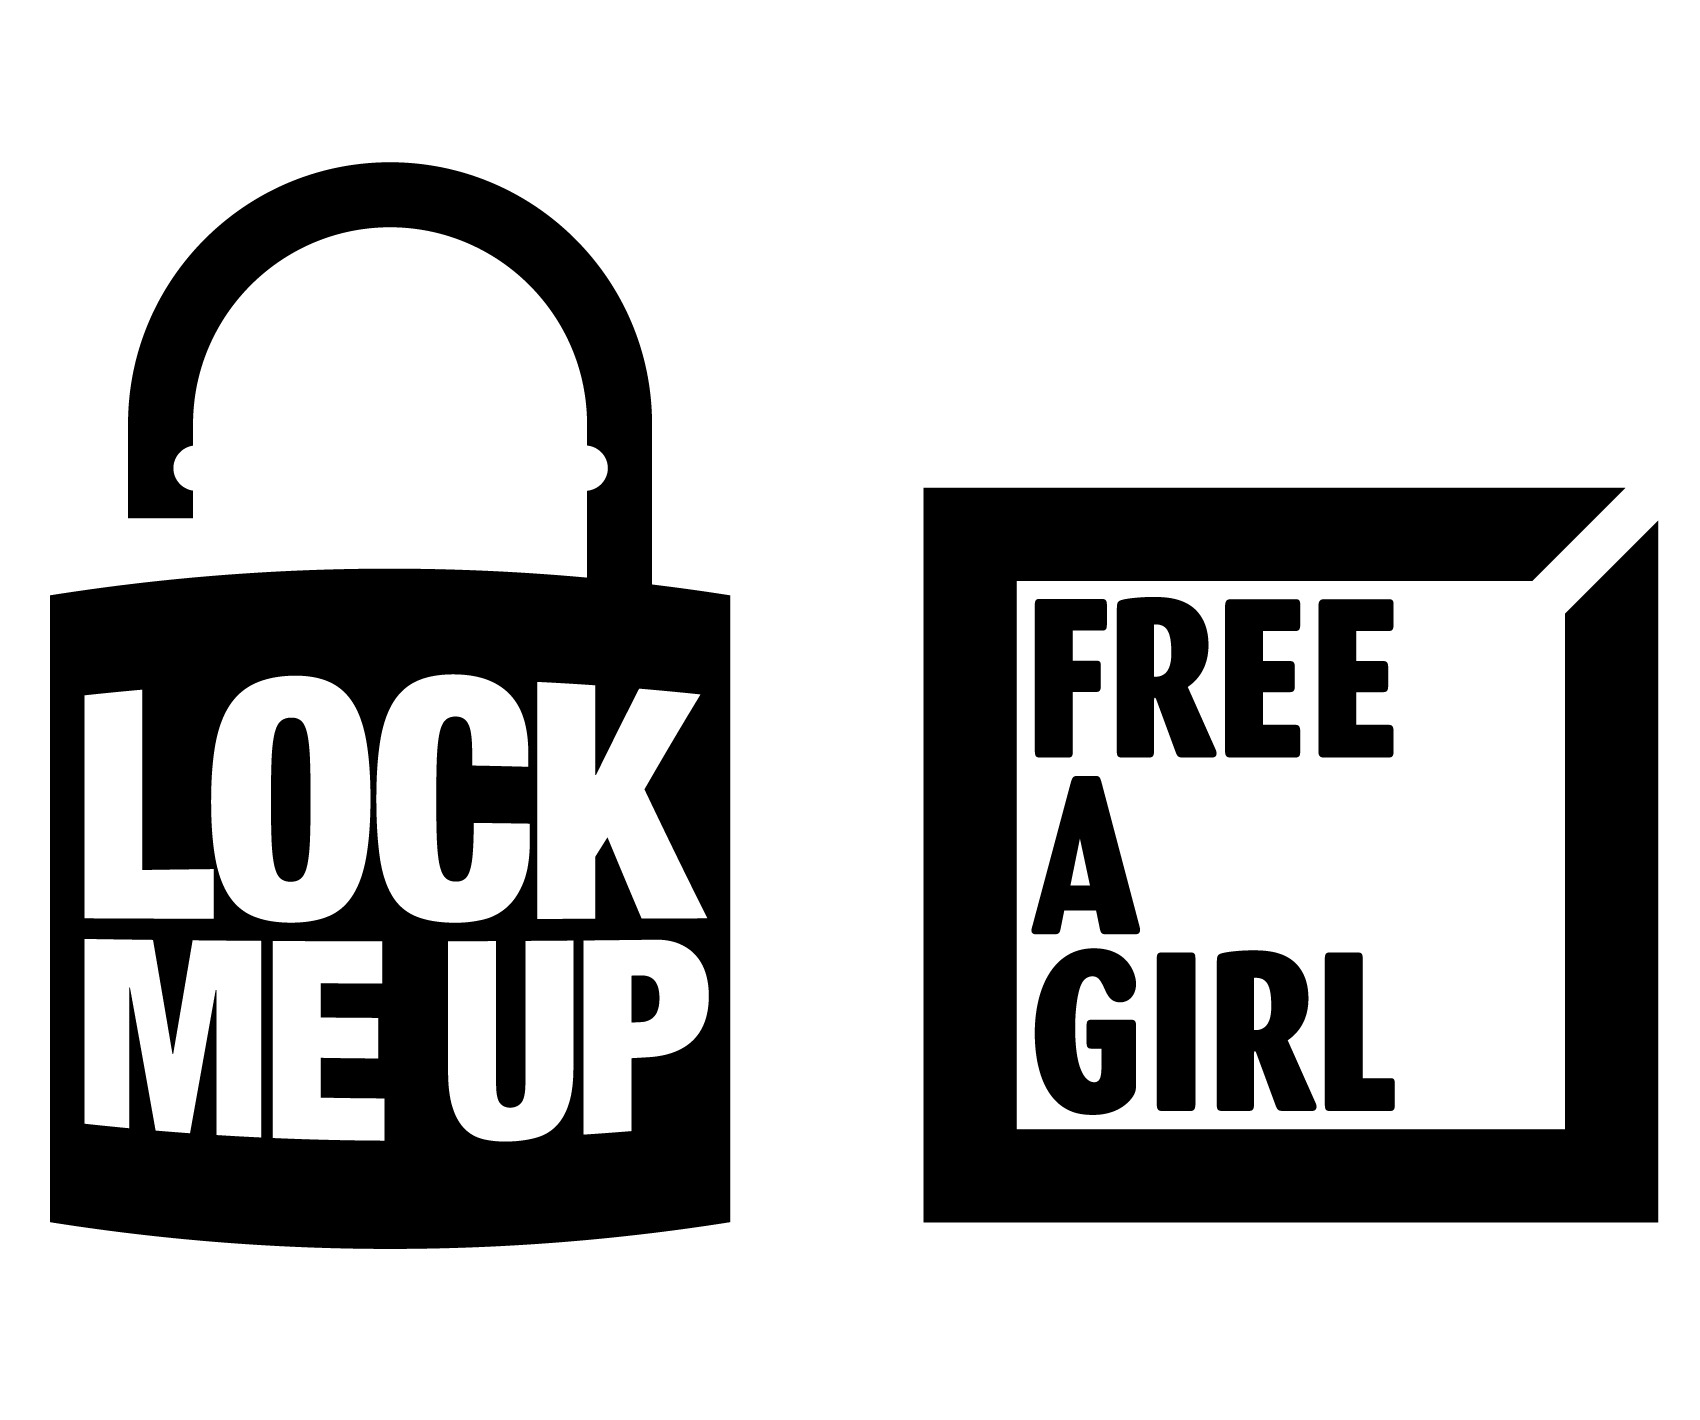 lock me up free a girl